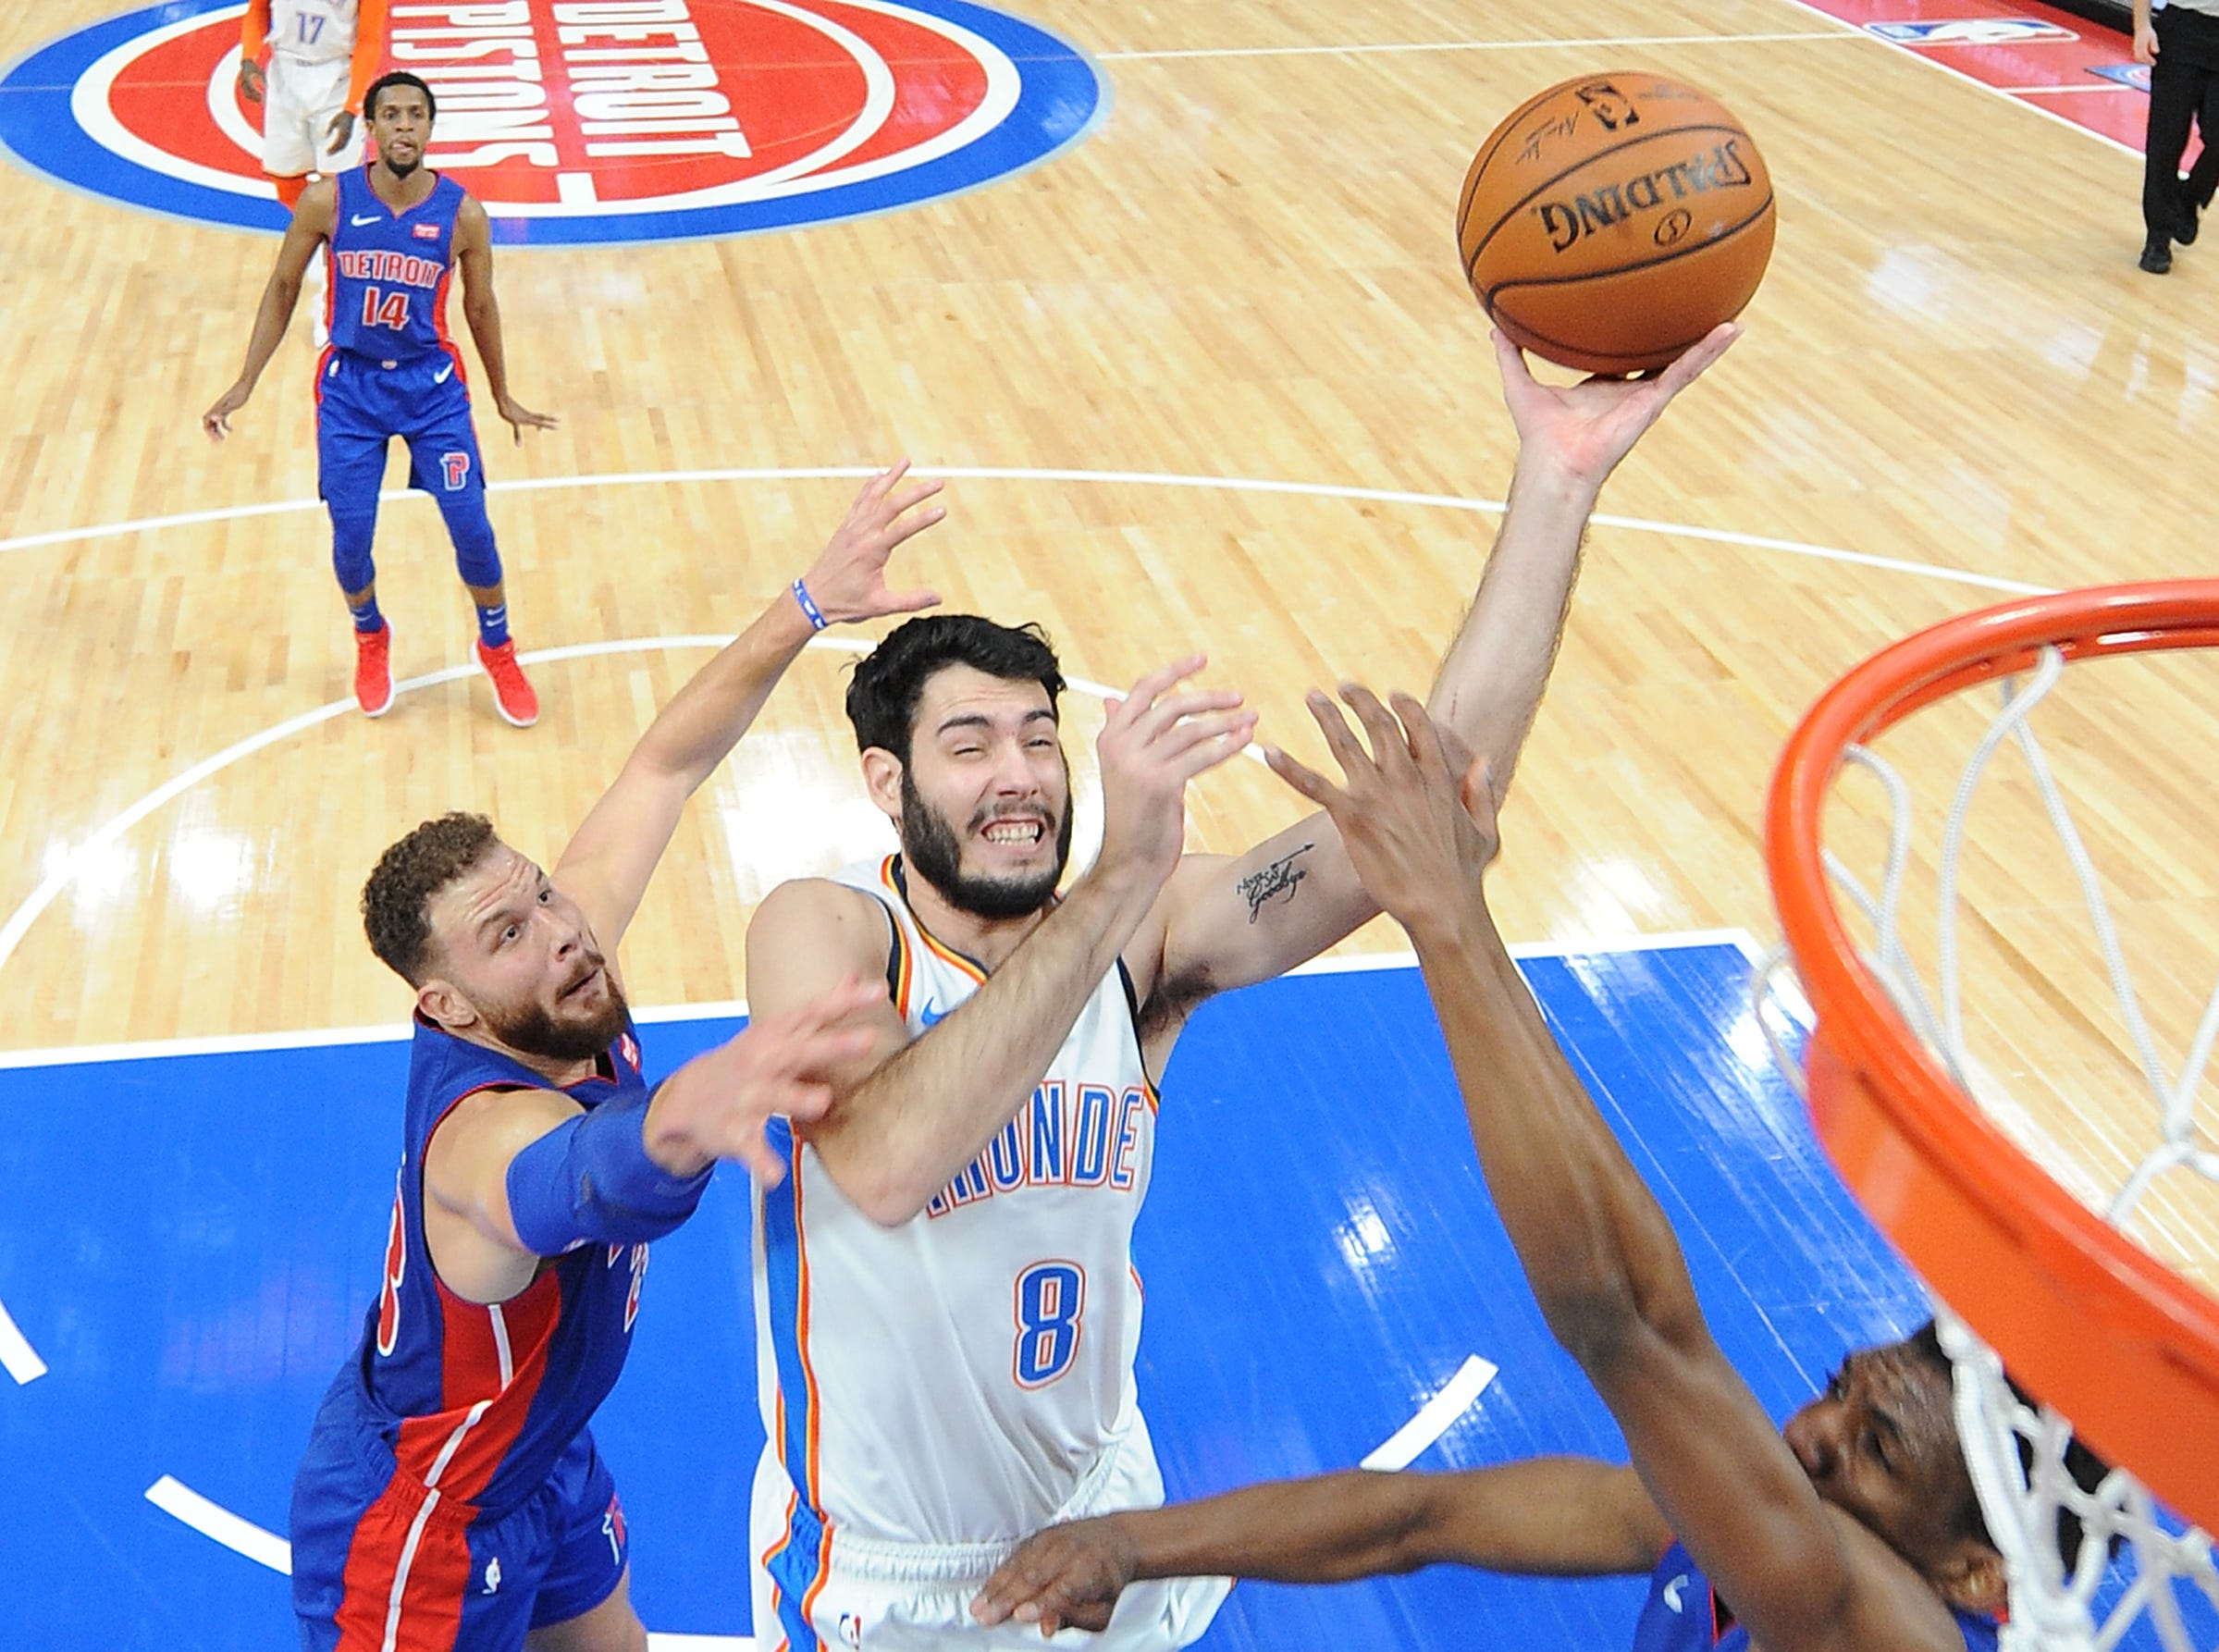 Thunder's Alex Abrines scores over Pistons' Langston Galloway and Blake Griffin in the second quarter.